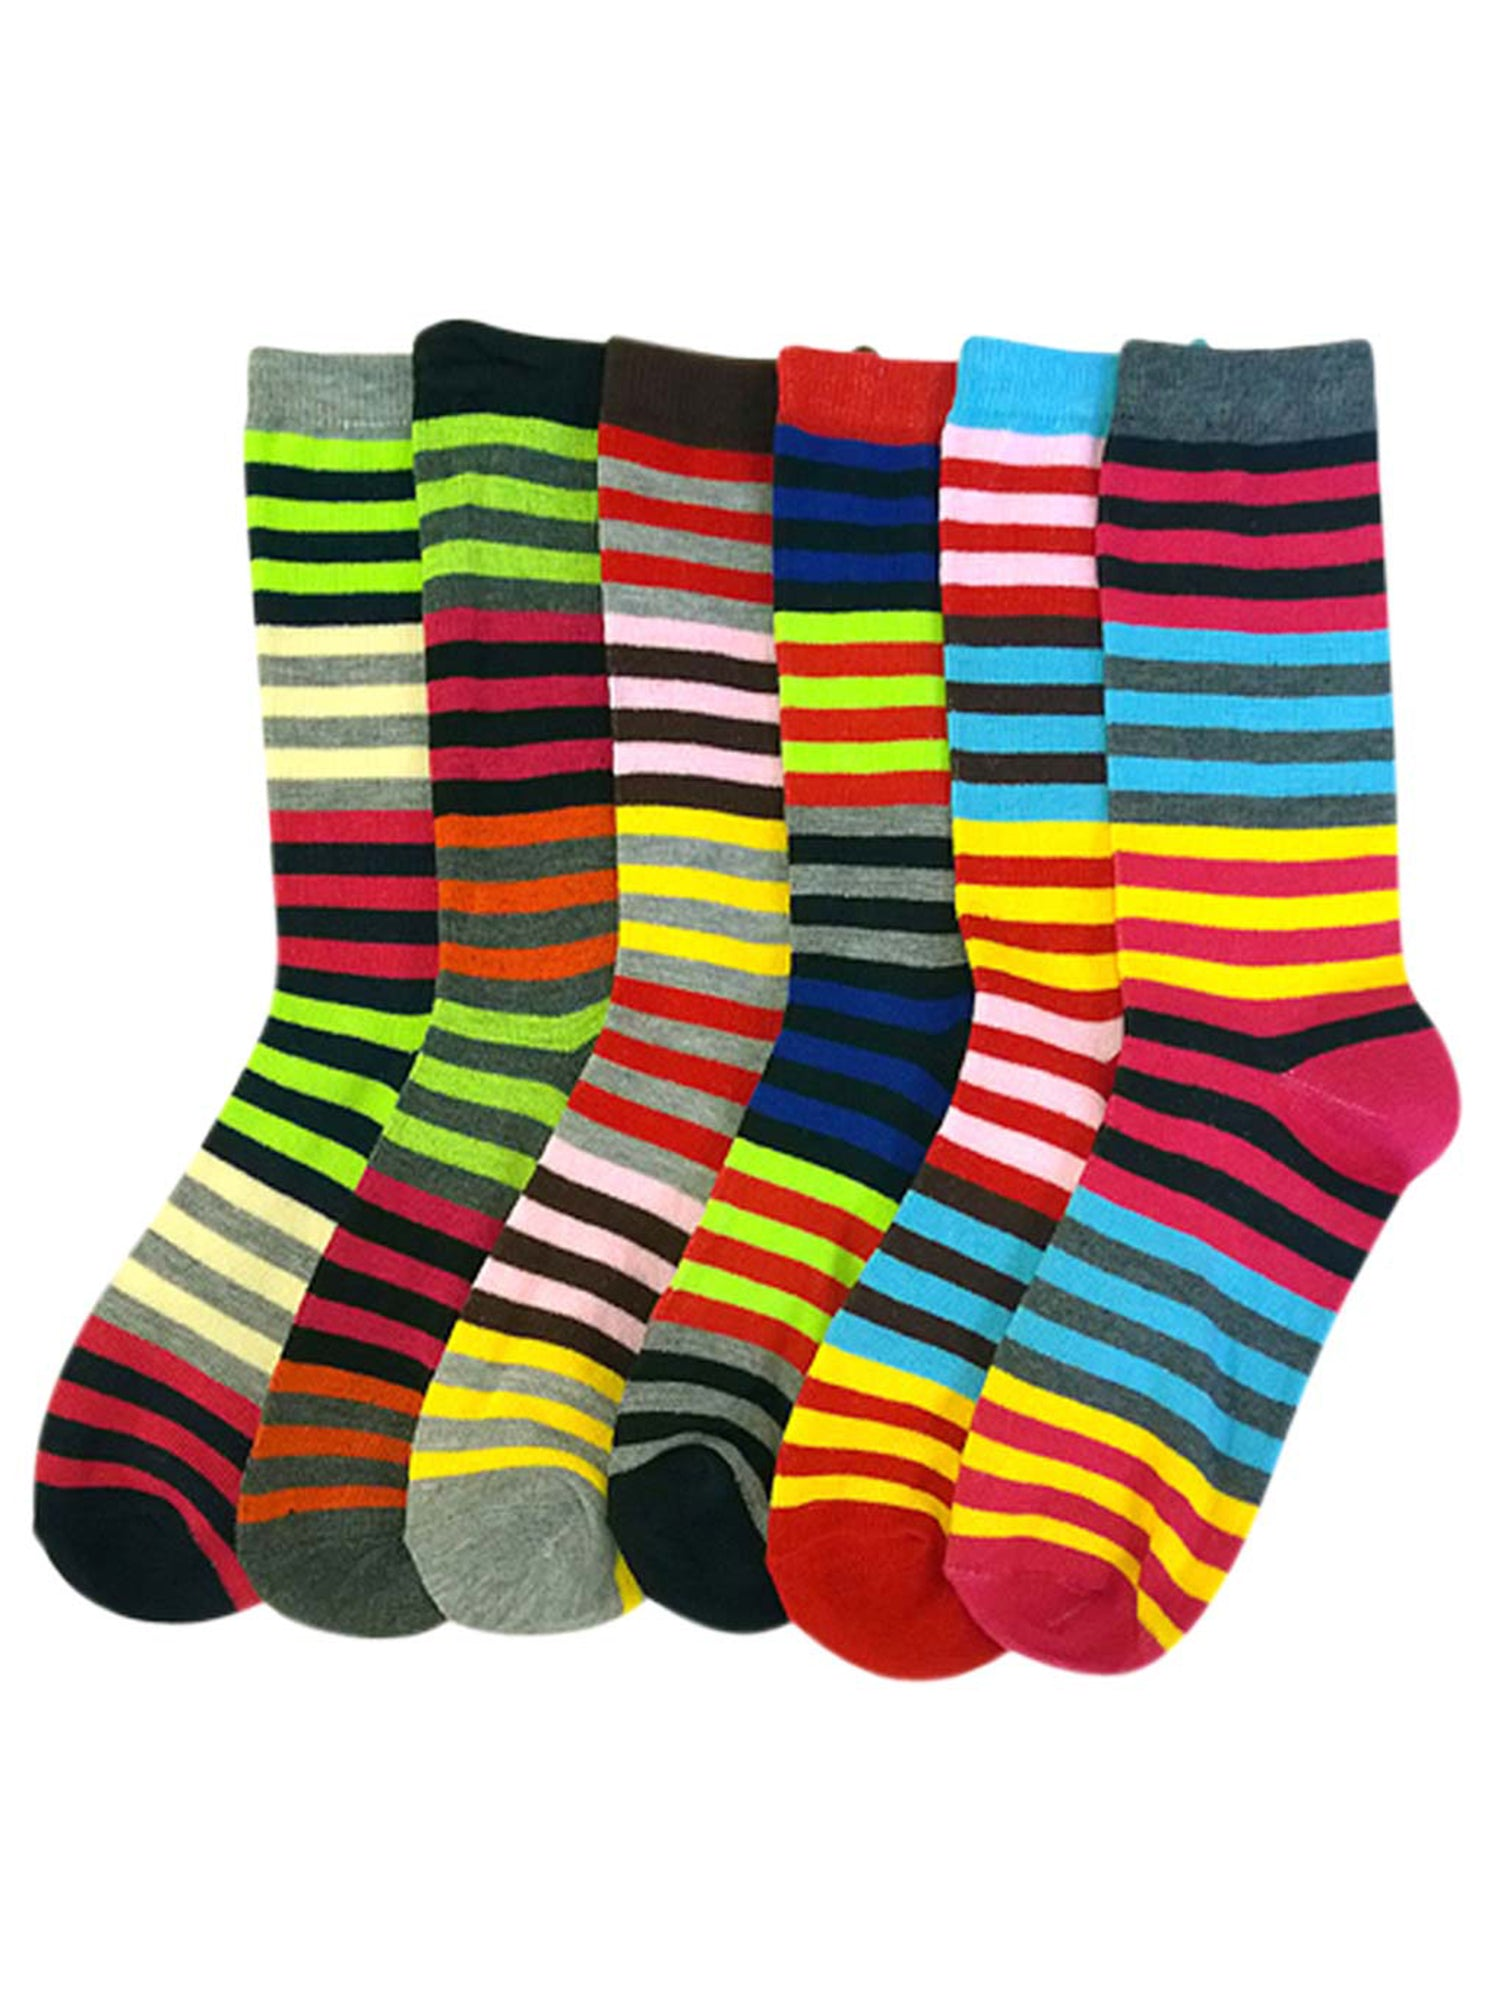 Bright & Colorful Striped Womens 6 Pack Assorted Crew Socks